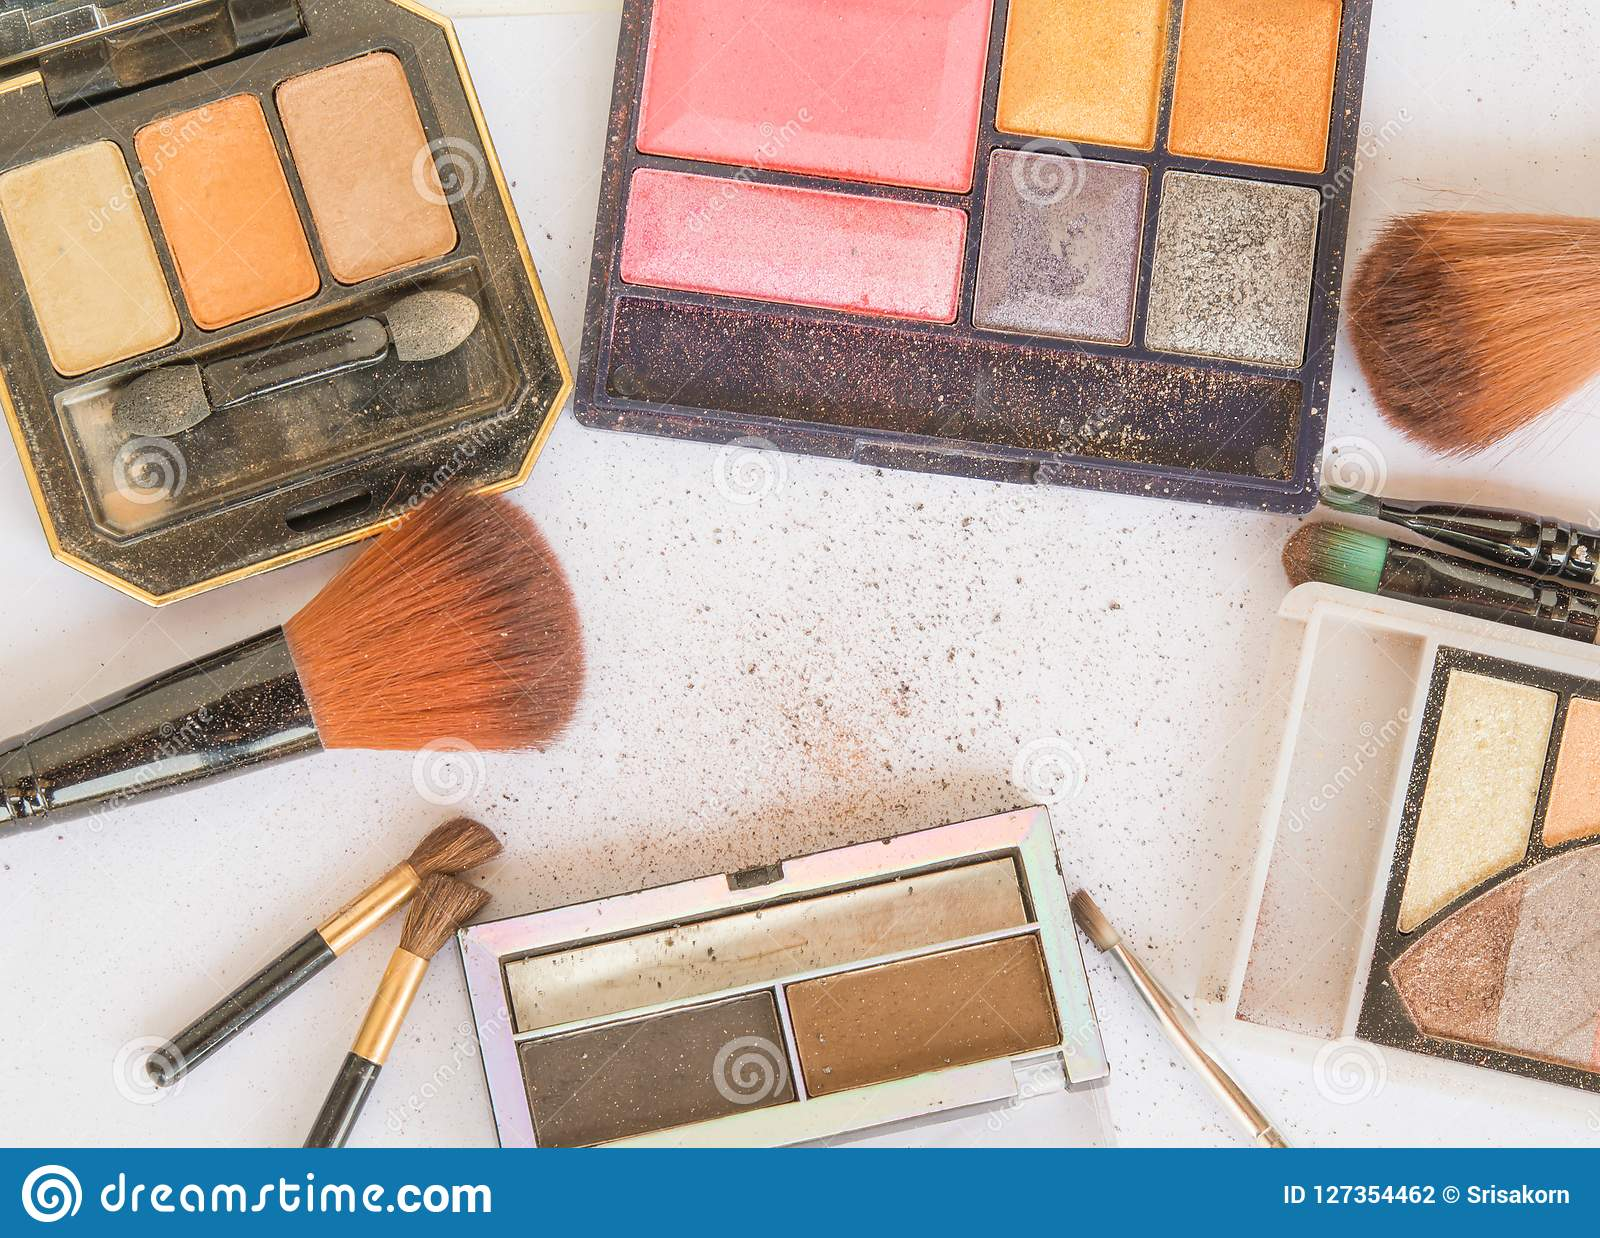 Equipment and Cosmetics For makeup At the Makeup